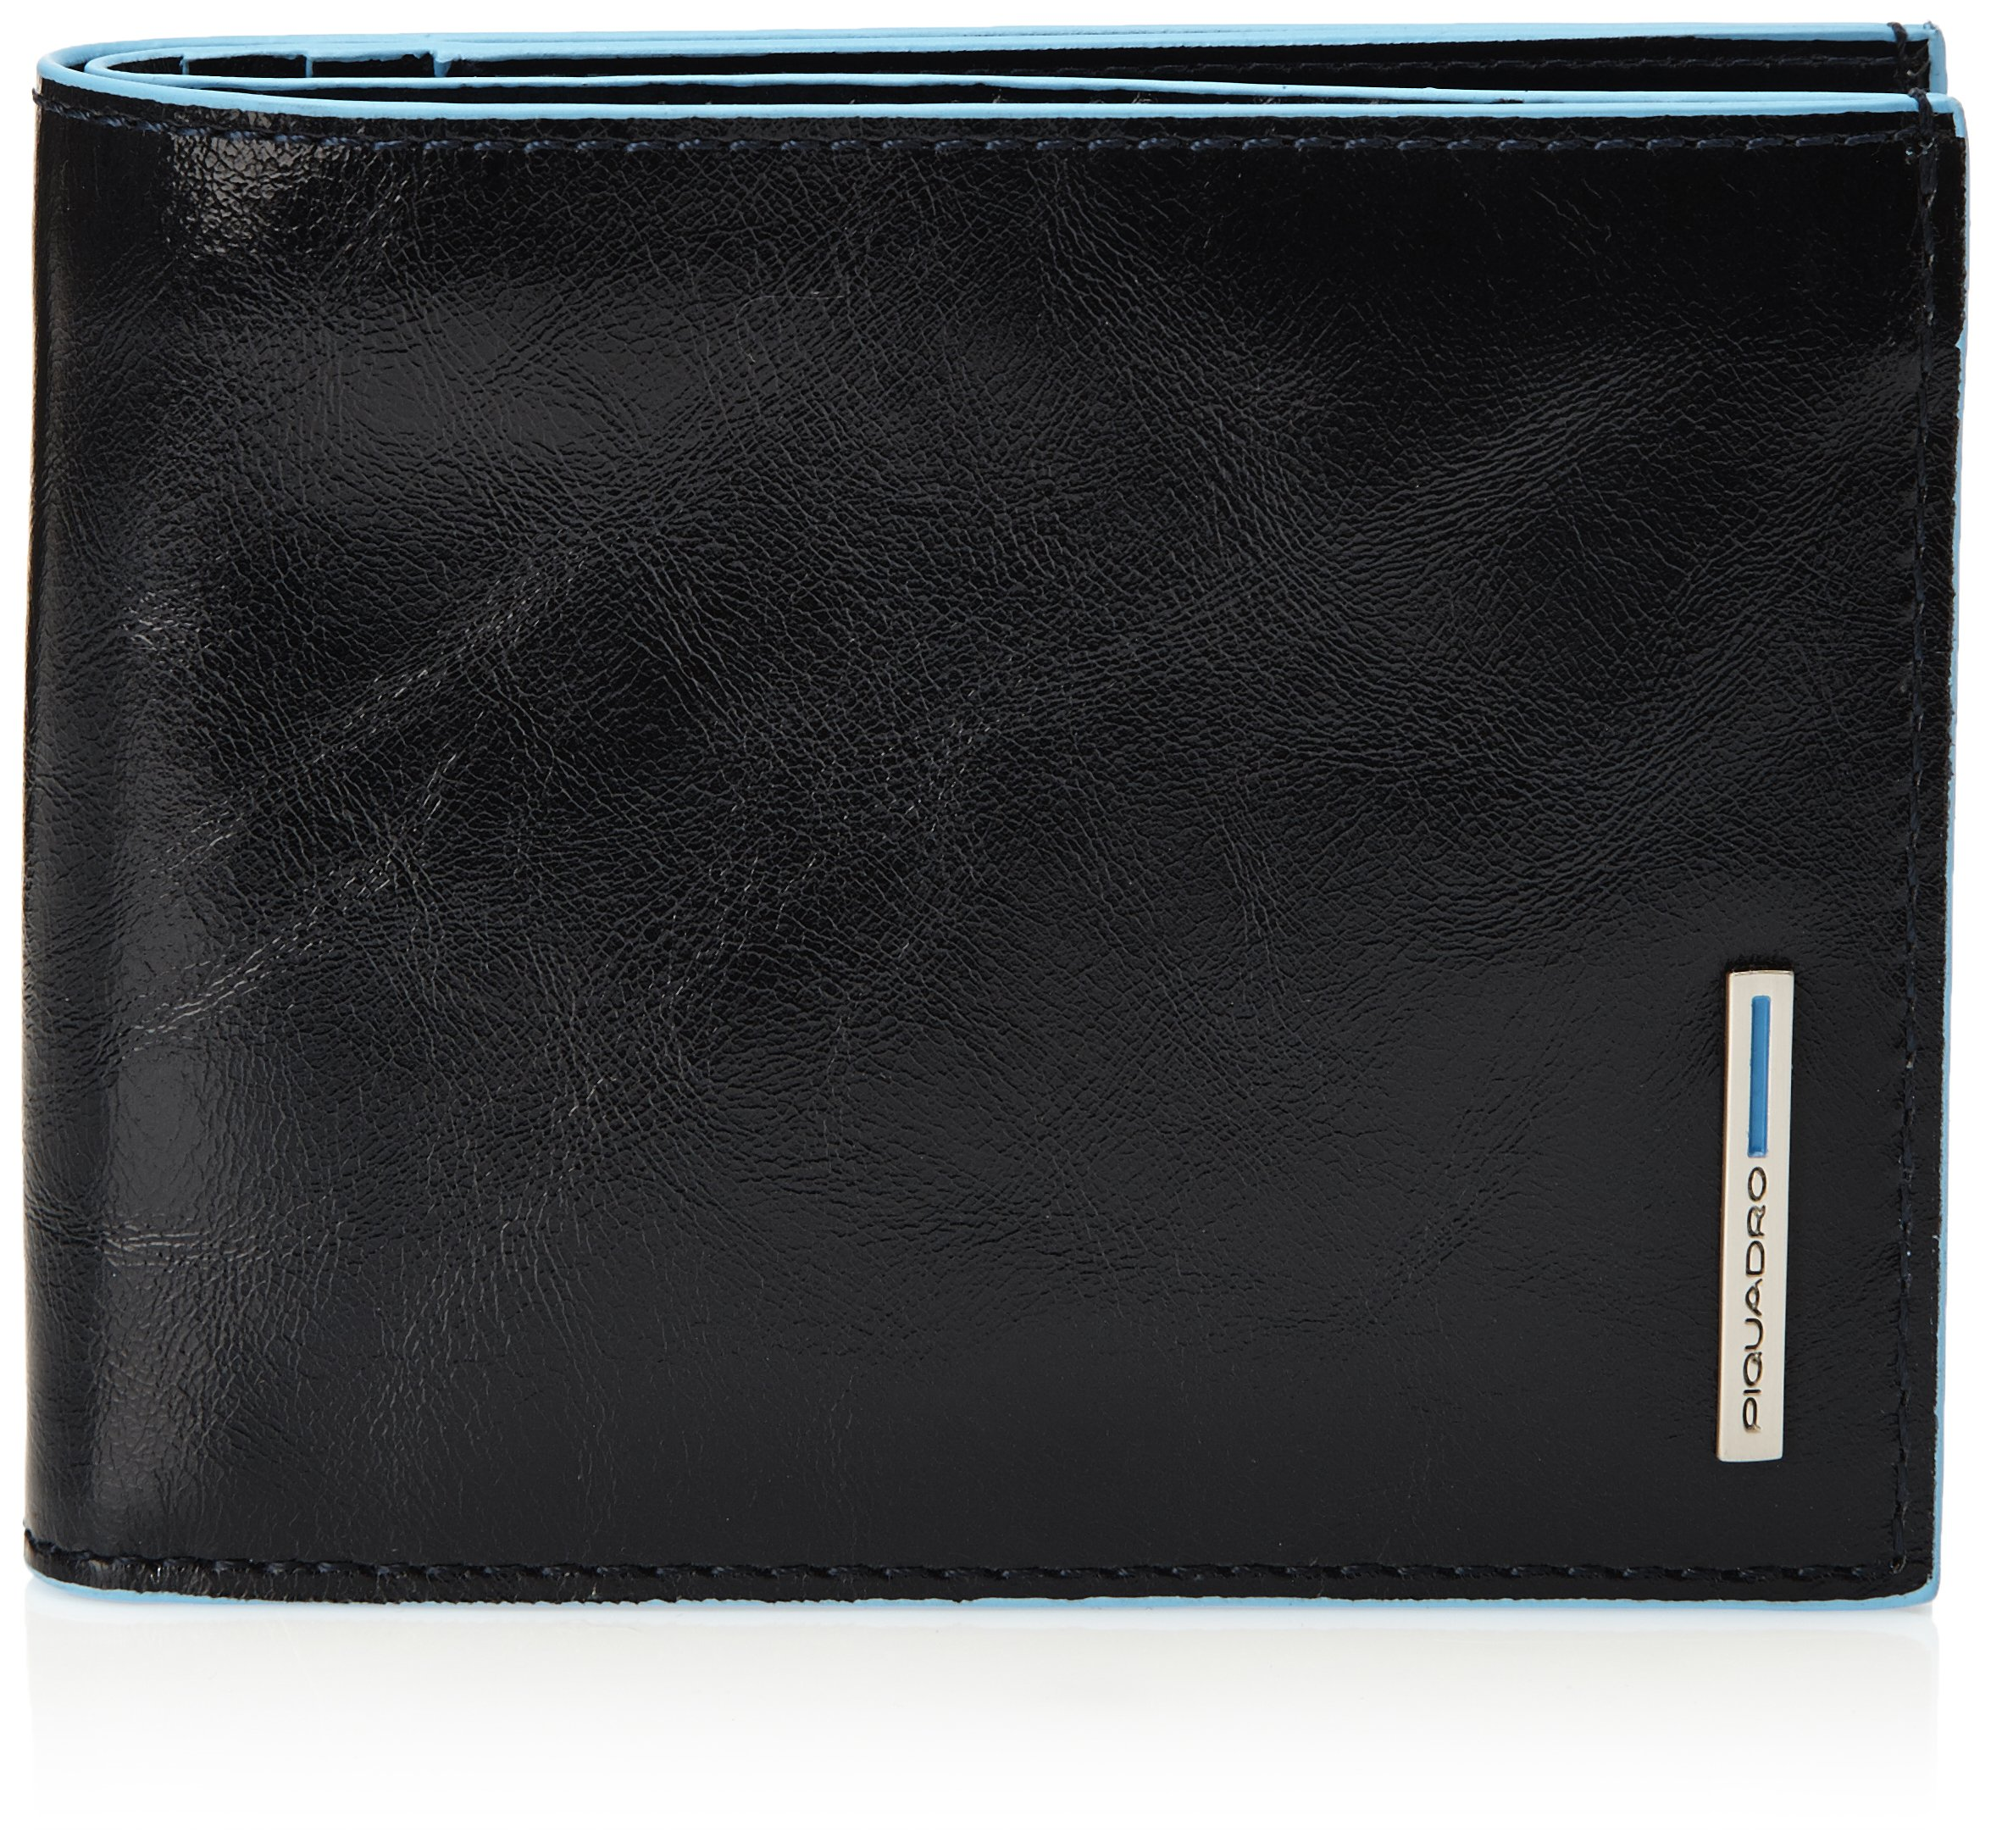 Piquadro Leather Man's Wallet with 12 Credit Card Slots, Dark Blue by Piquadro